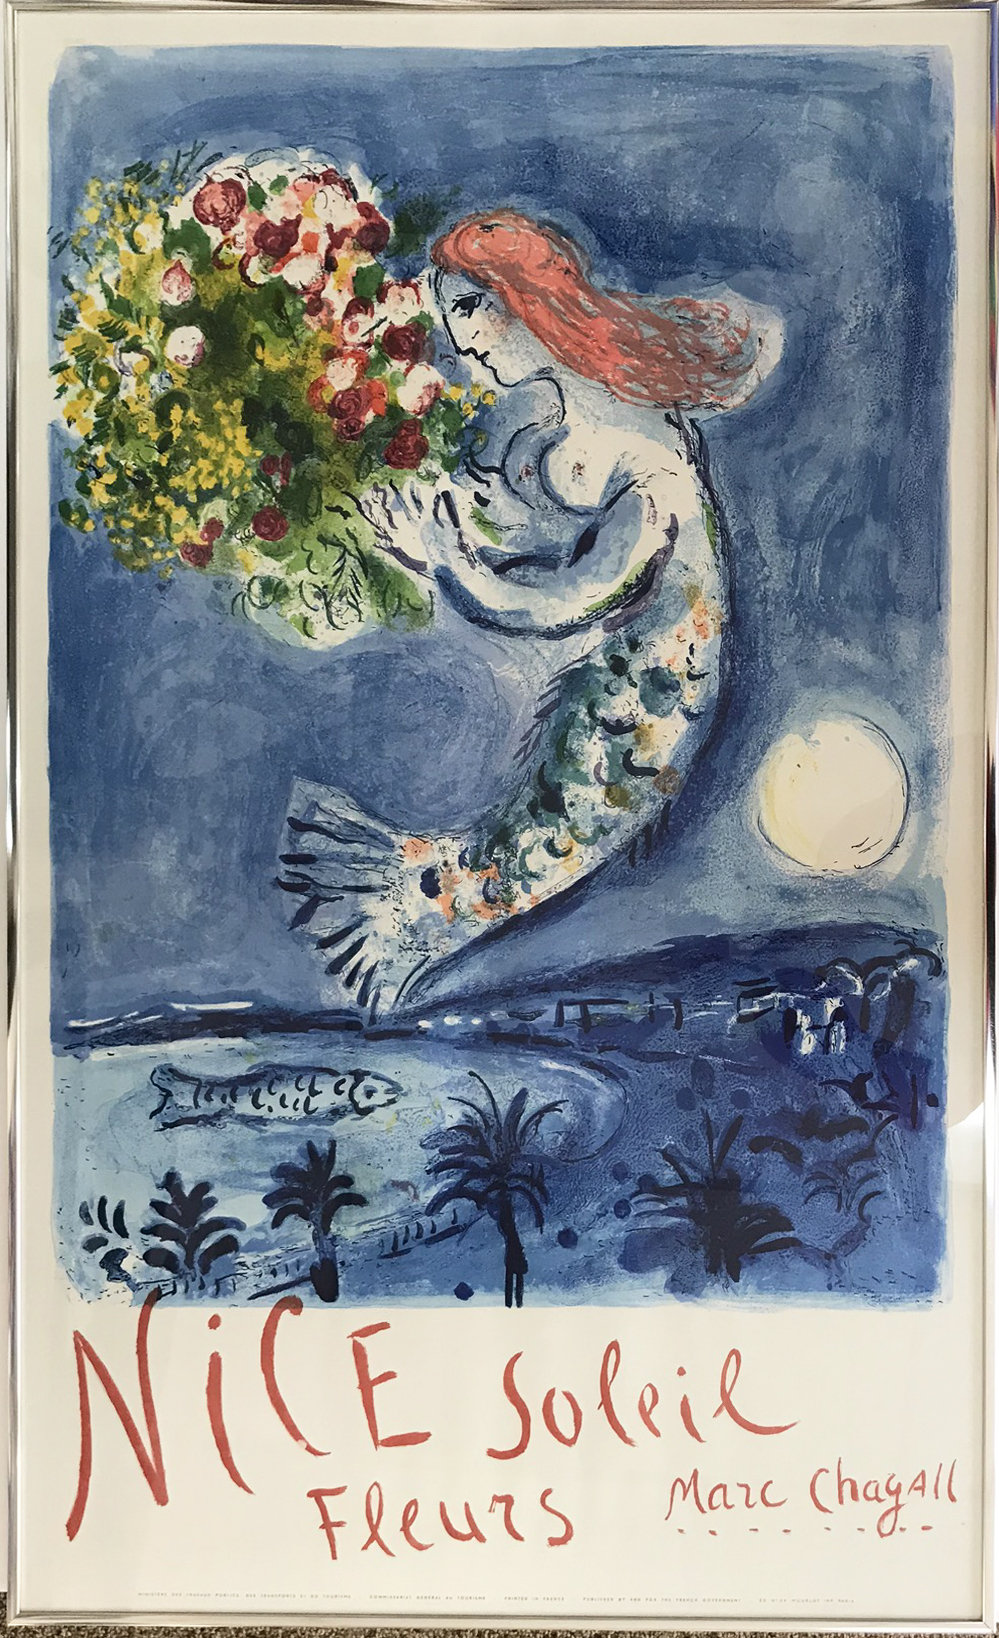 Marc Chagall Original Lithograph Poster, Bay of Angels, Nice series 1962, Framed